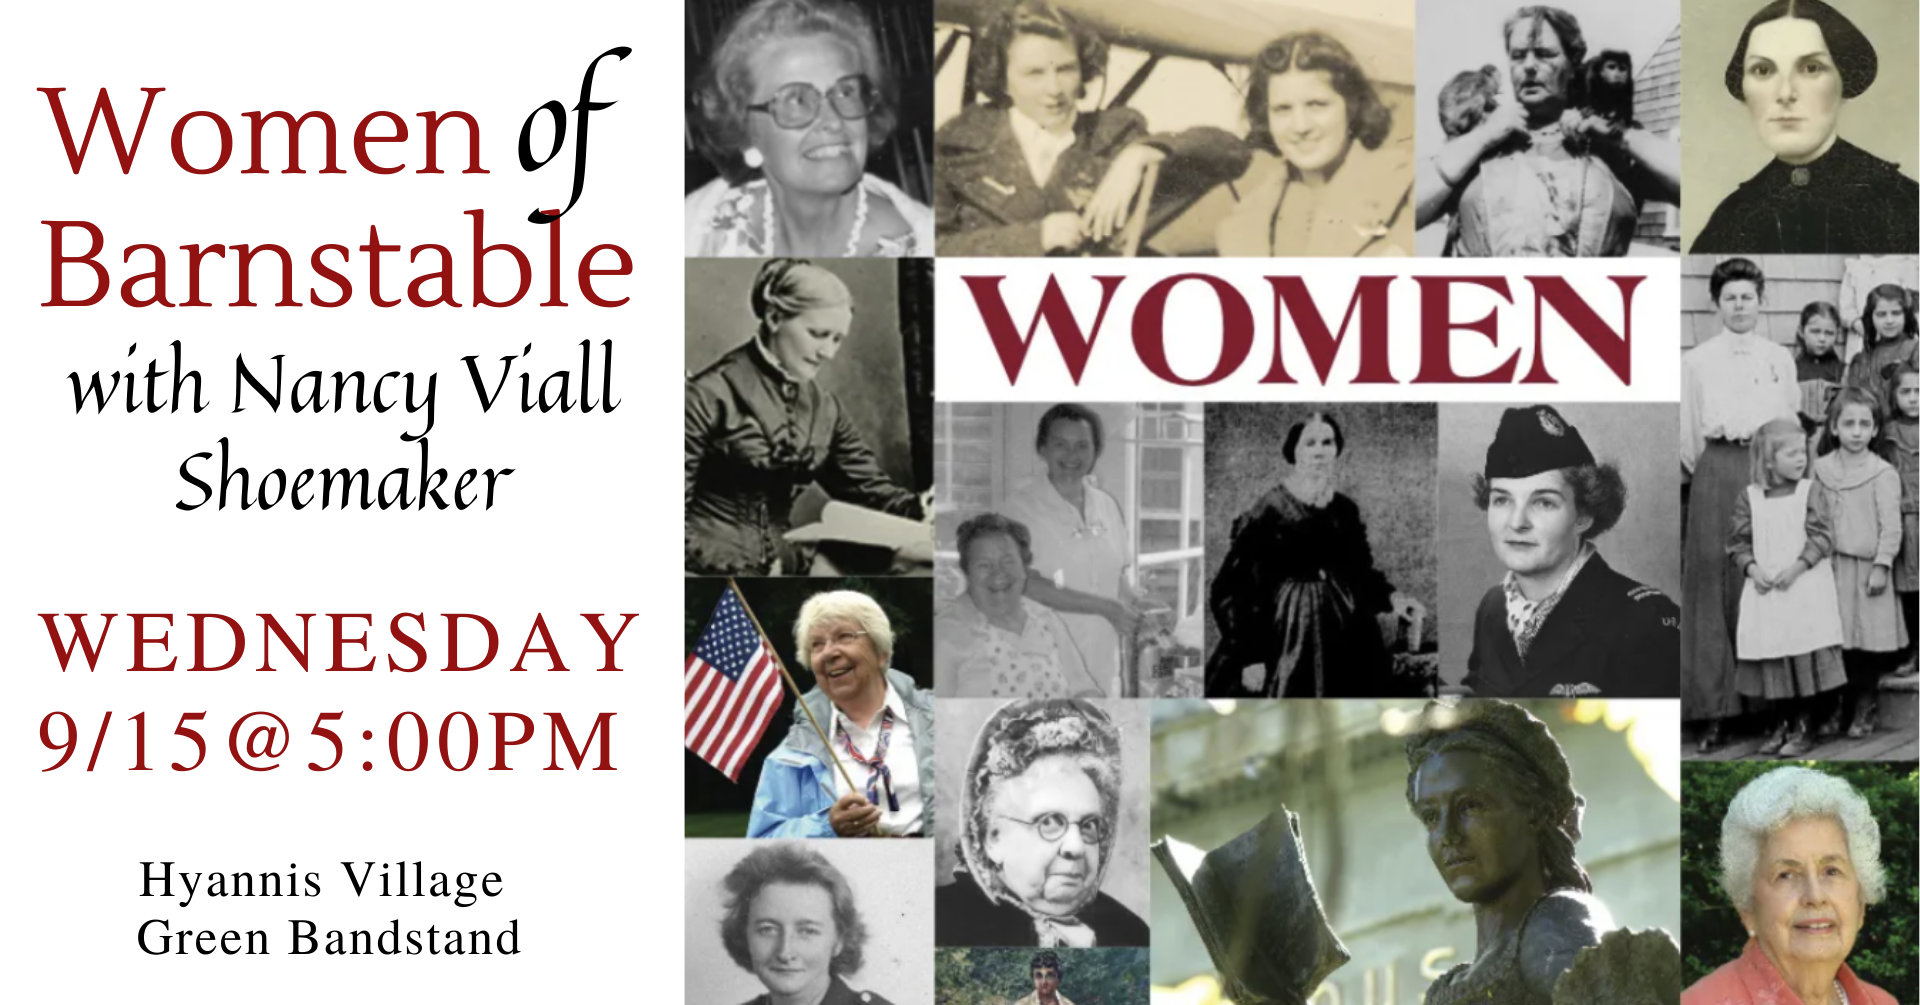 Women of Barnstable event cover.